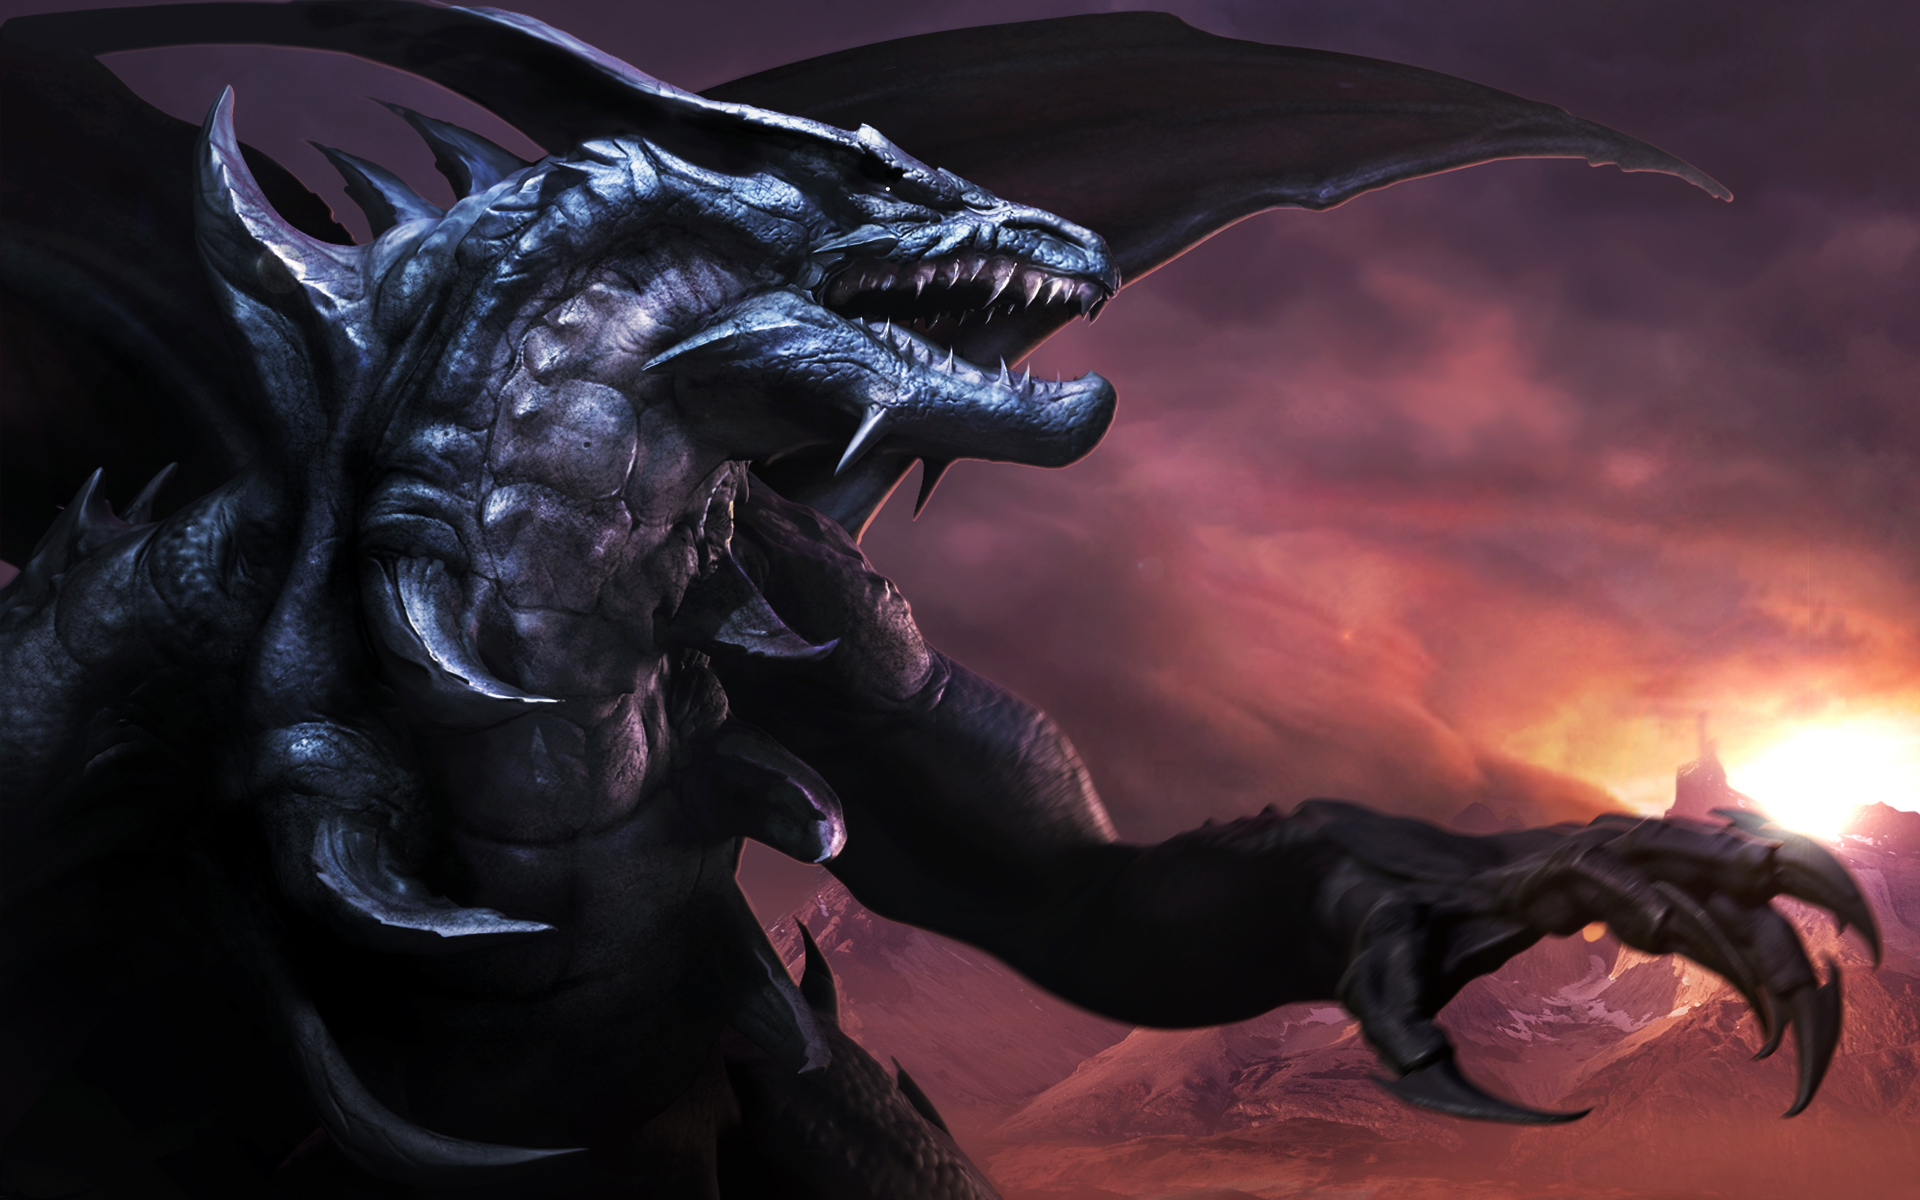 dragons images black dragon hd wallpaper and background